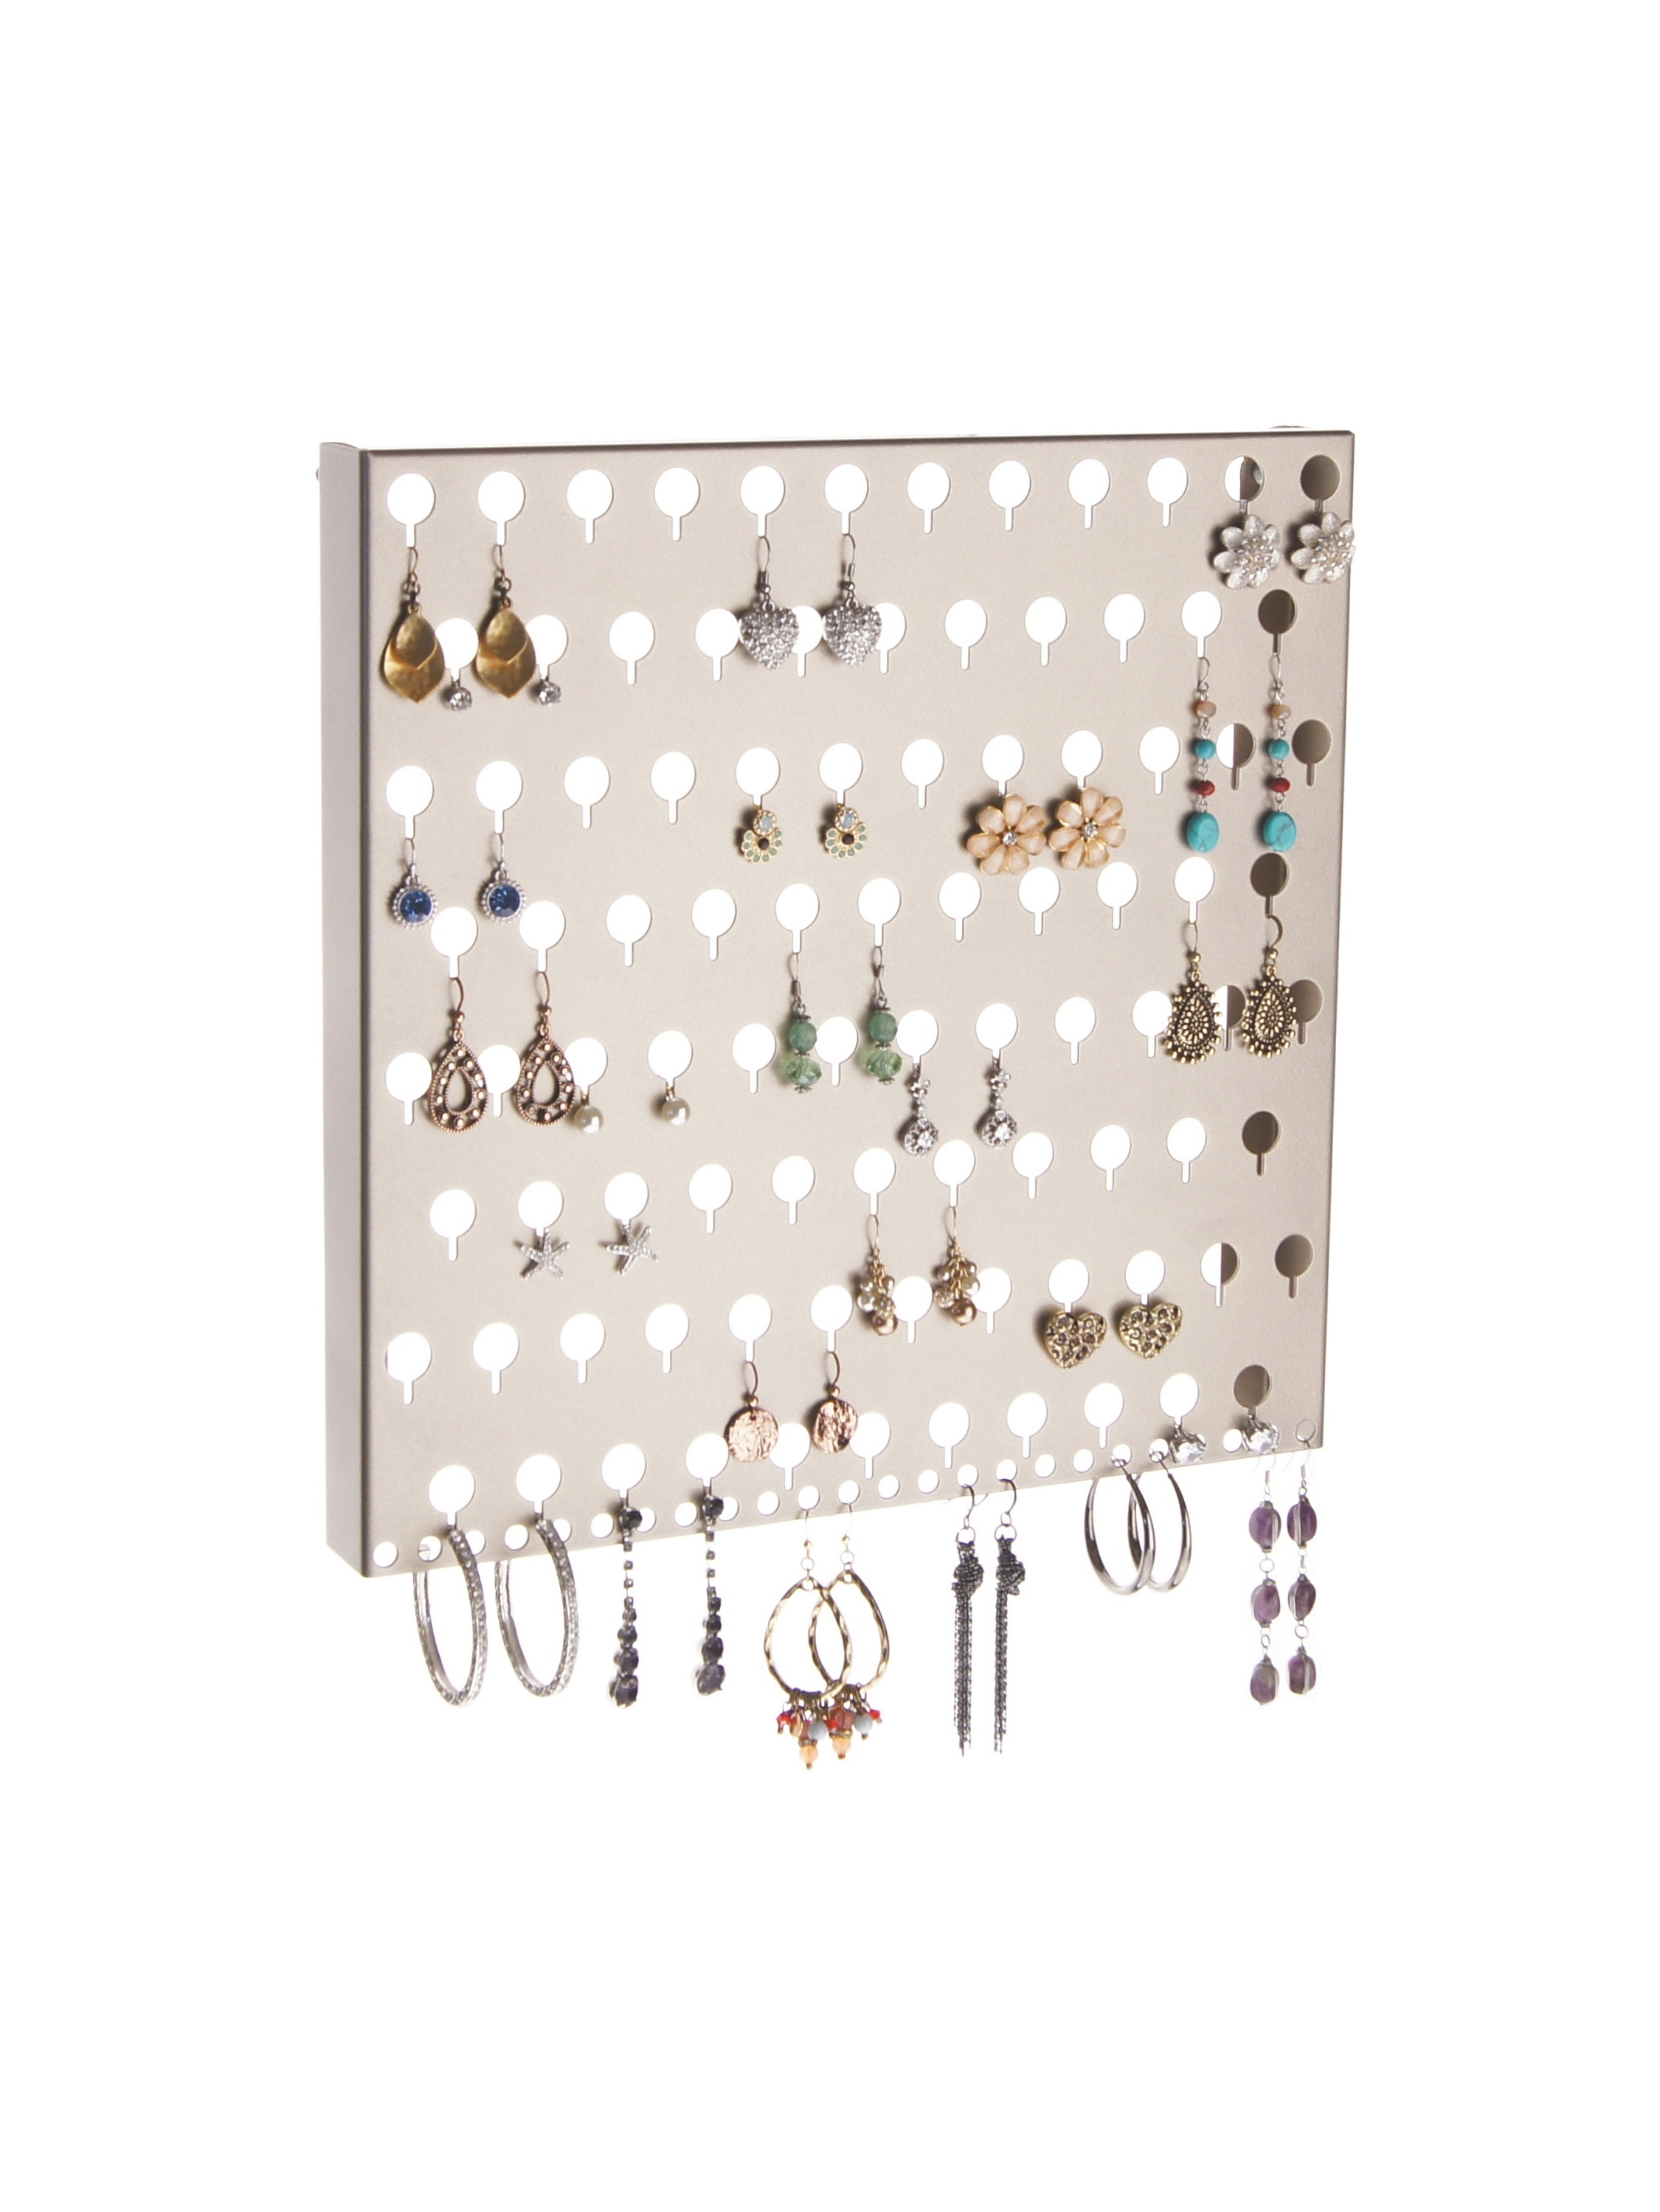 Wall Mount Earring Holder Jewelry Organizer Rack Closet Storage